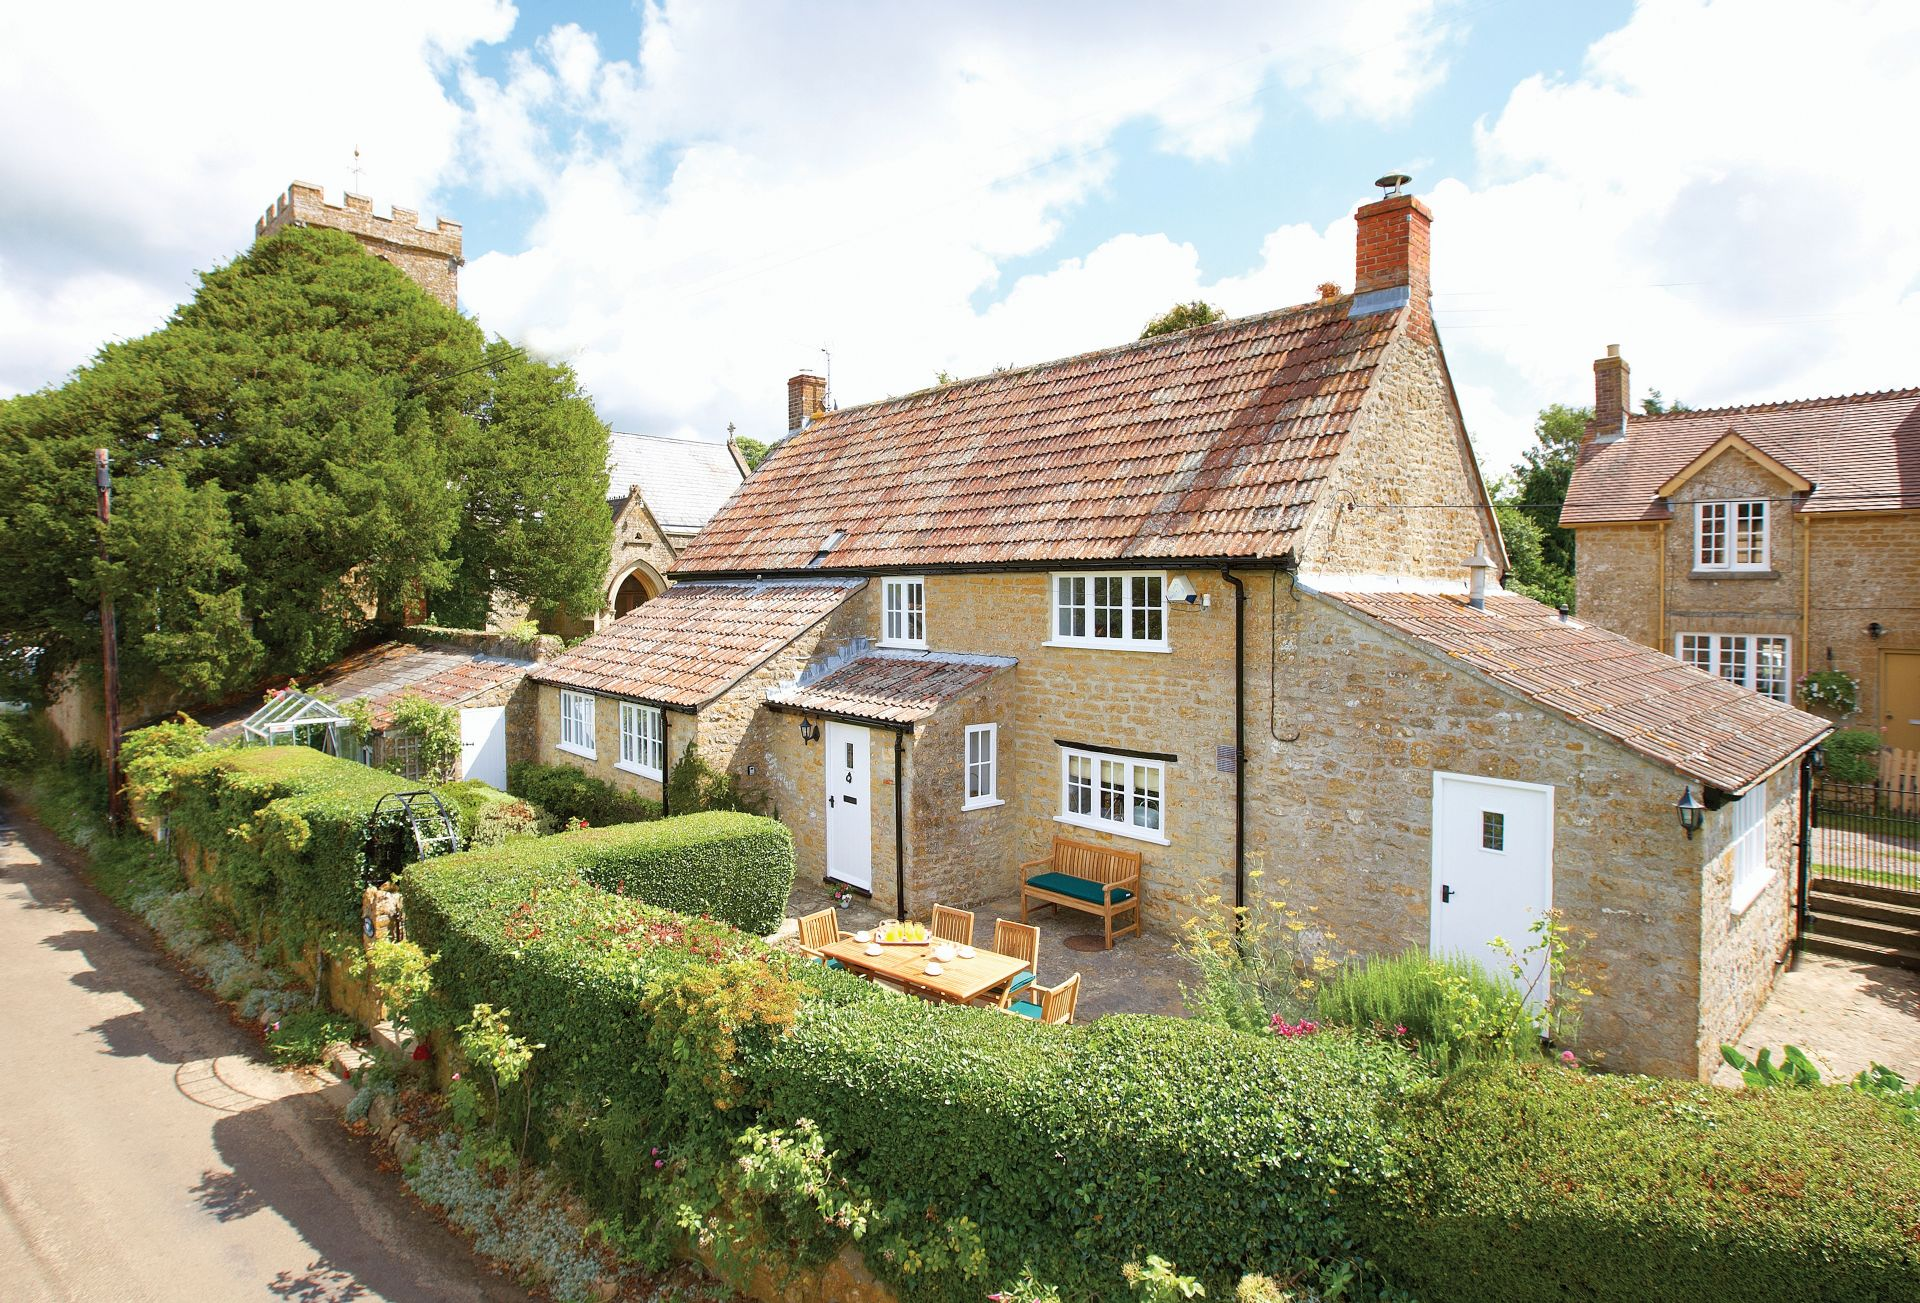 Rose Cottage, a beautiful, detached Grade II listed cottage in the charming village of Powerstock